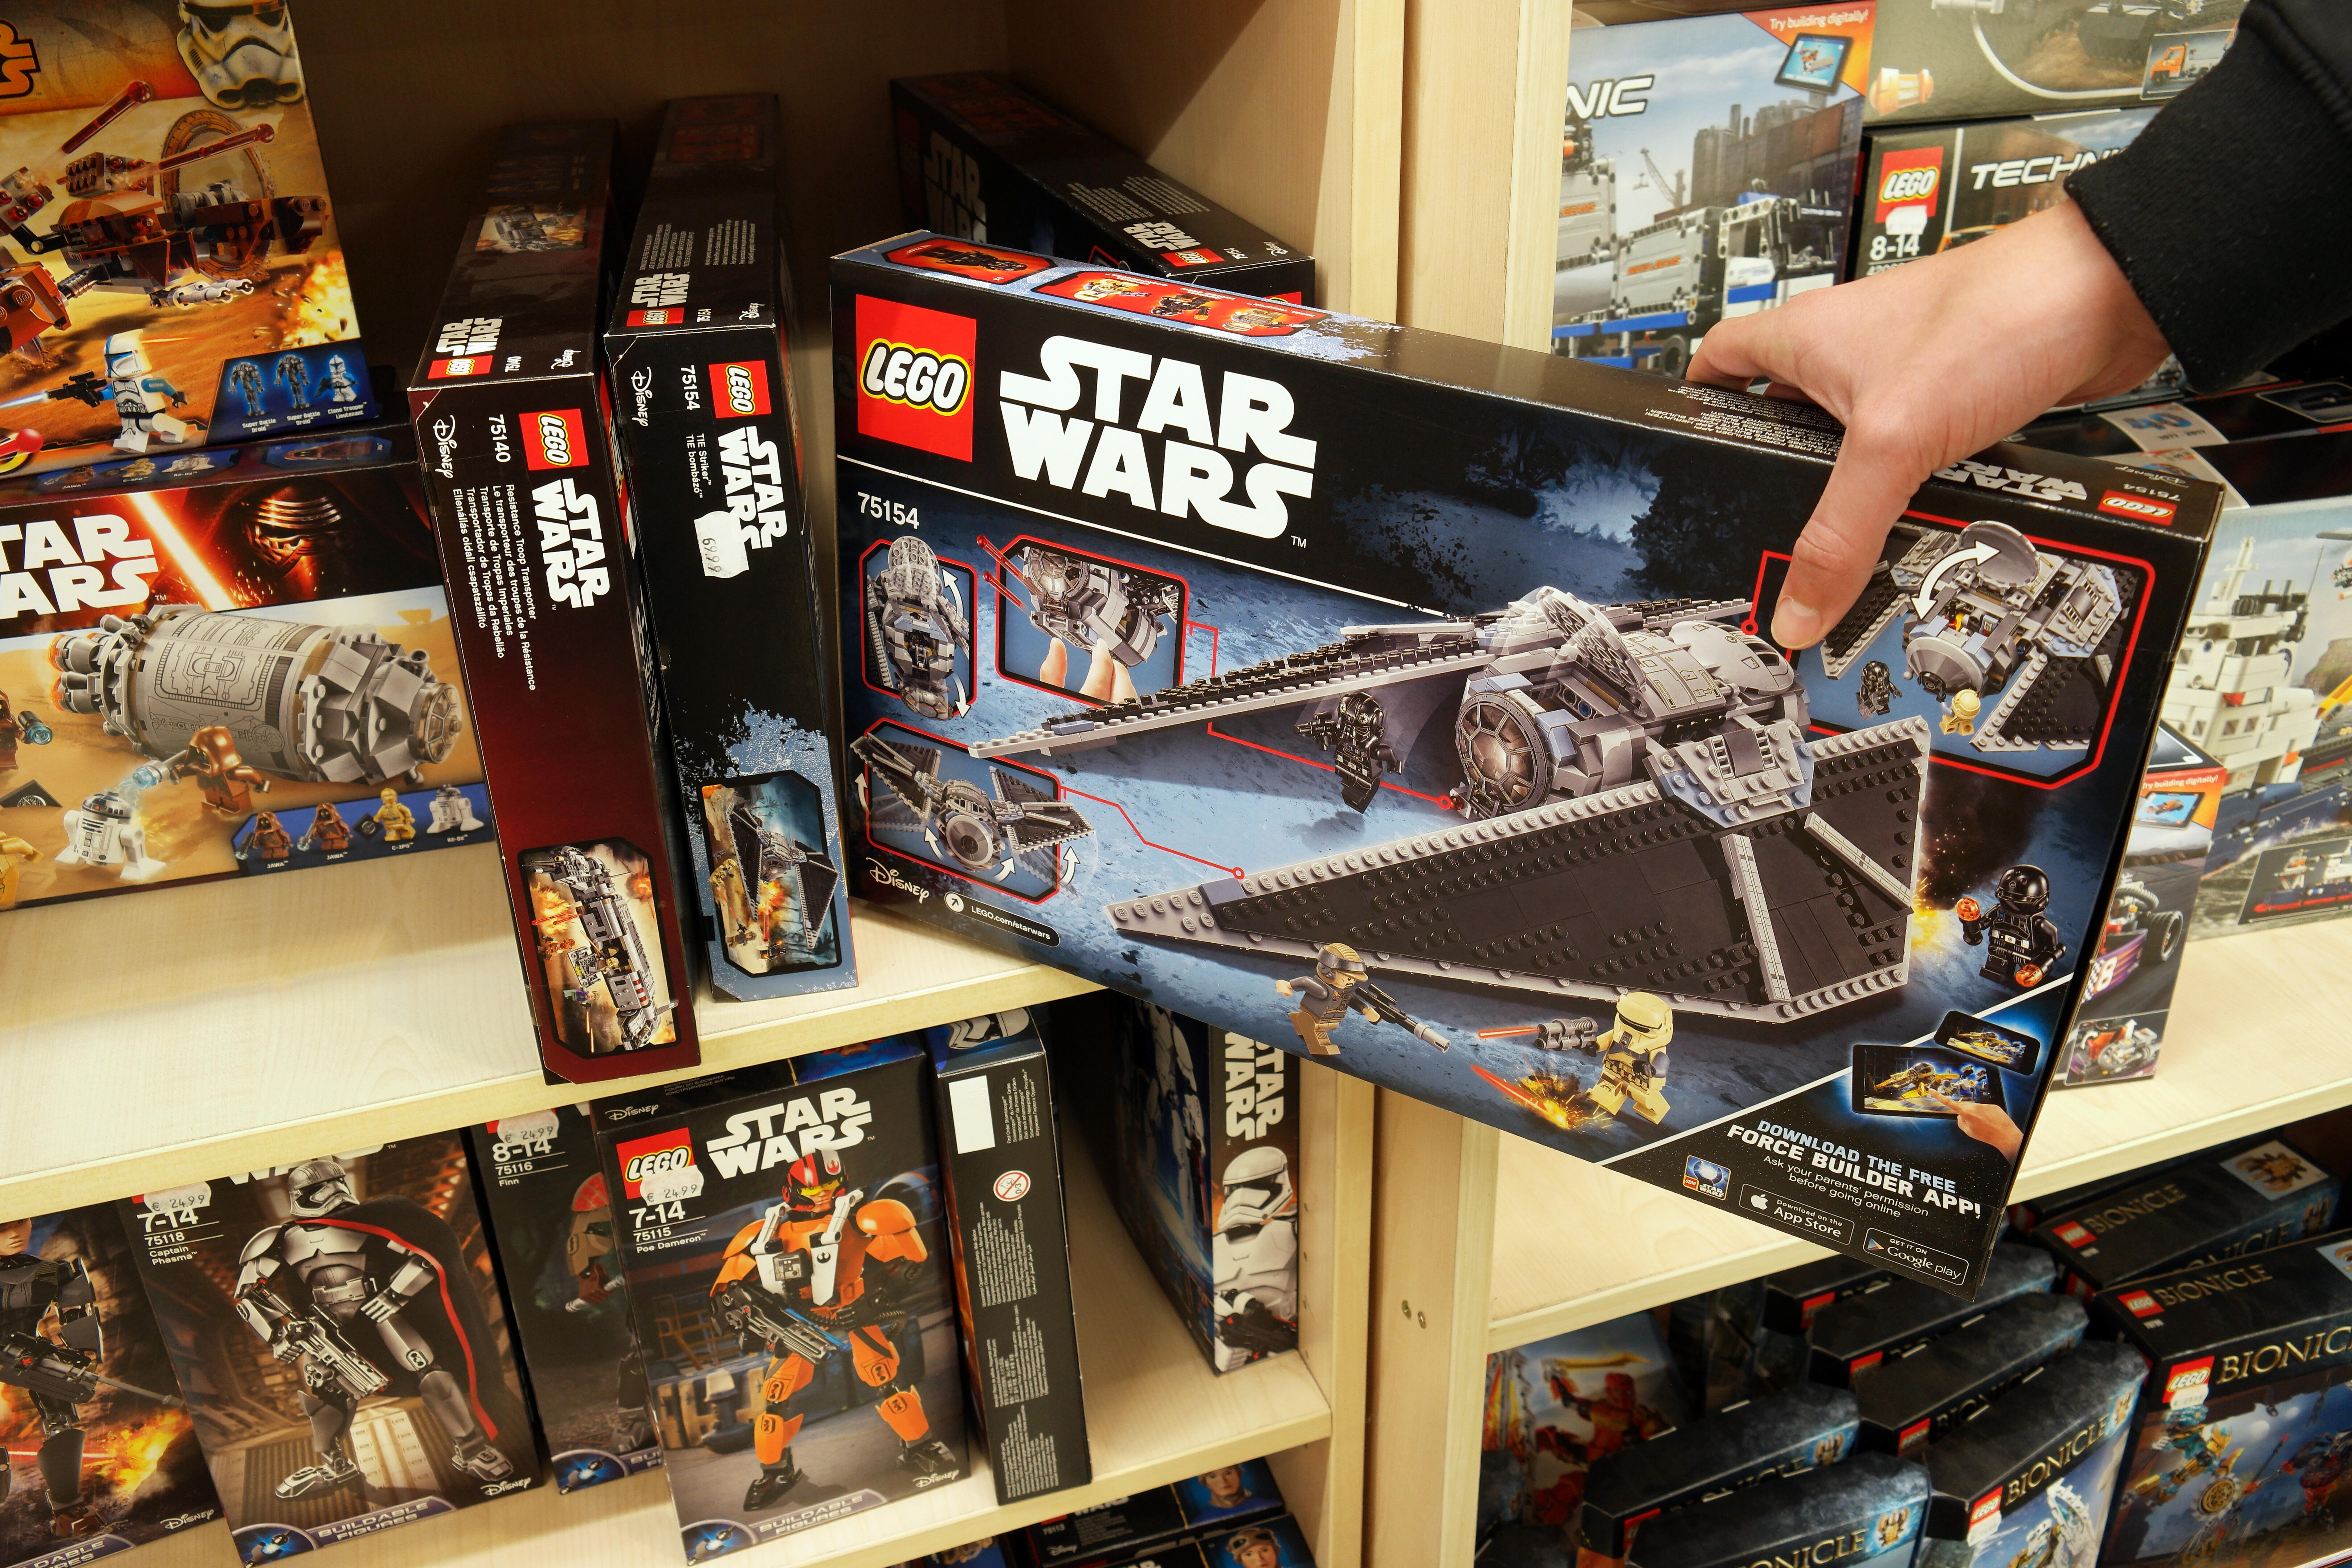 Lego Star Wars boxes